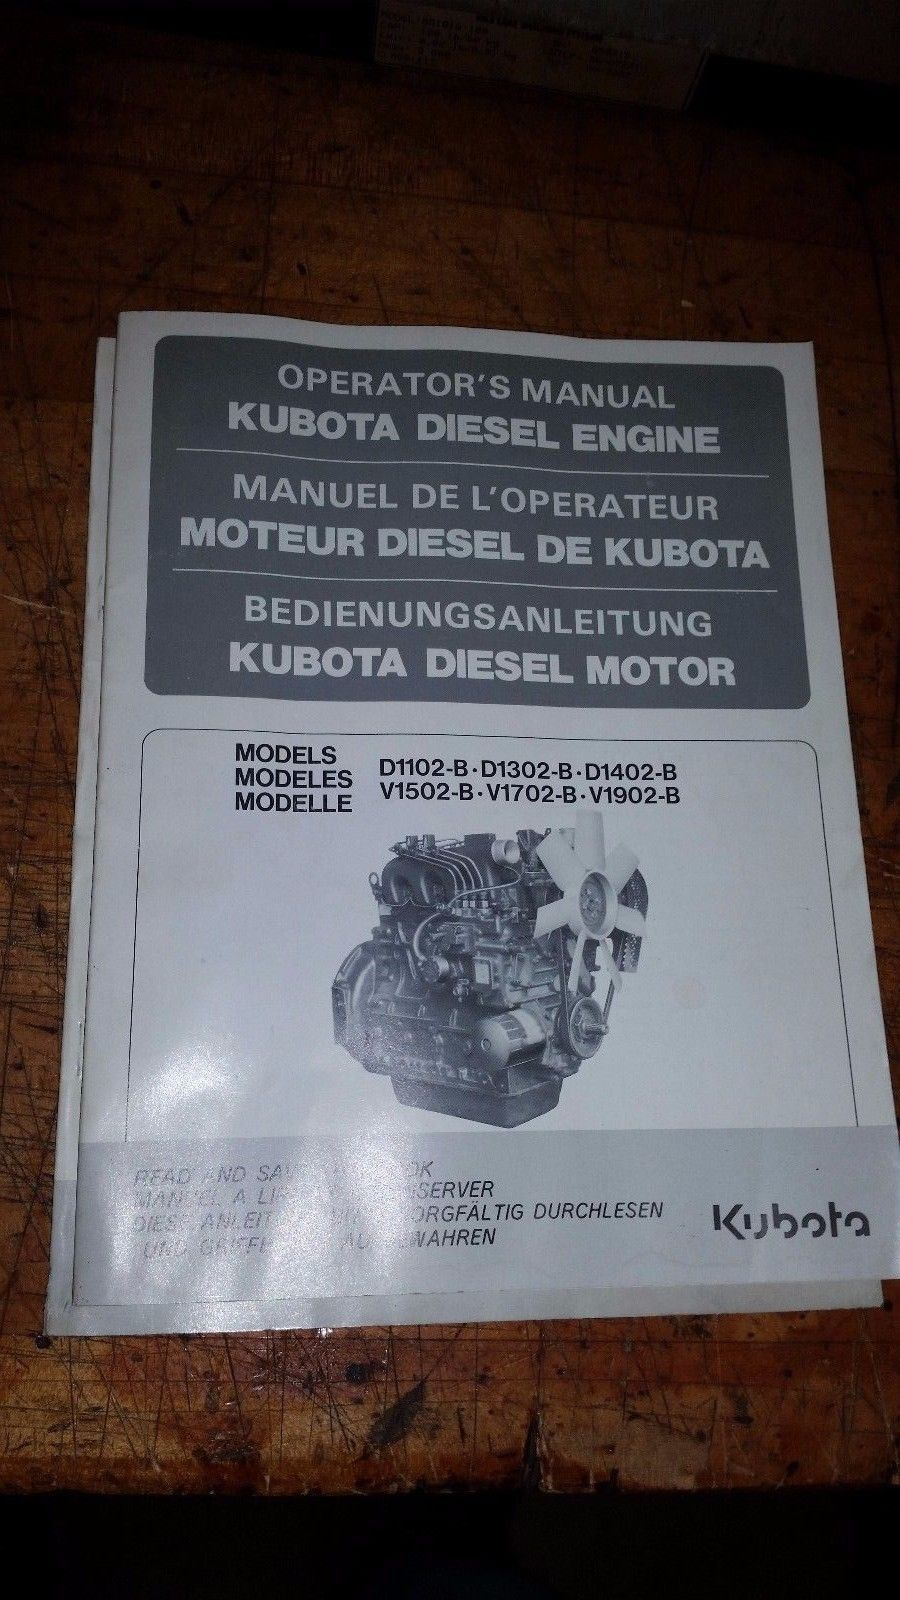 1 kubota diesel engine operators manual and 50 similar items rh bonanza com kubota v1702 engine parts manual